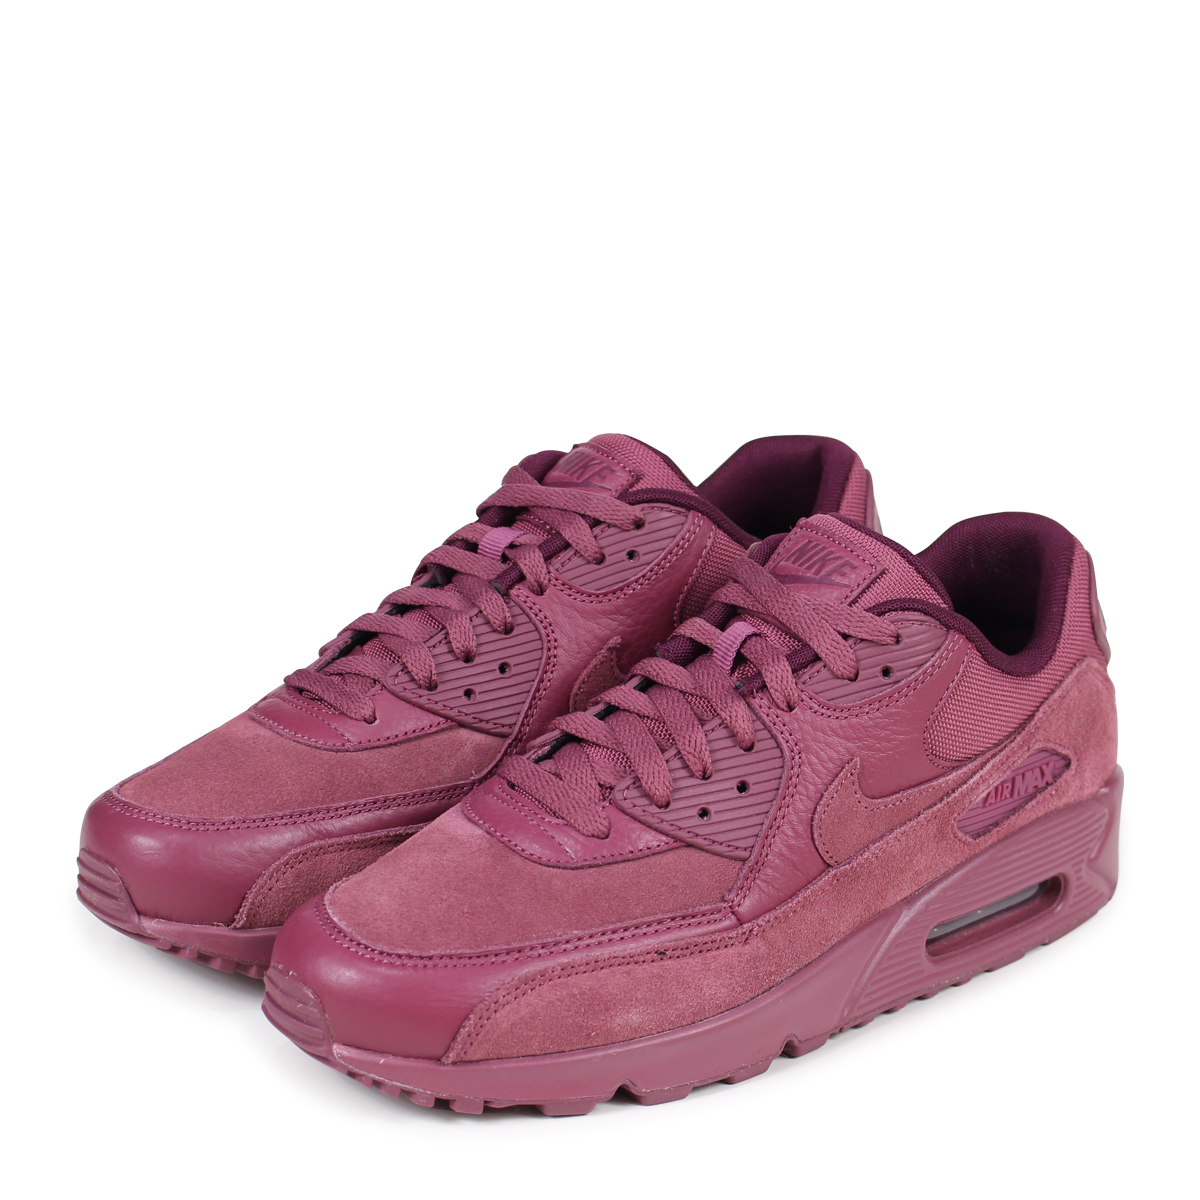 NIKE AIR MAX 90 PREMIUM Kie Ney AMAX 90 sneakers men 700,155 601 red